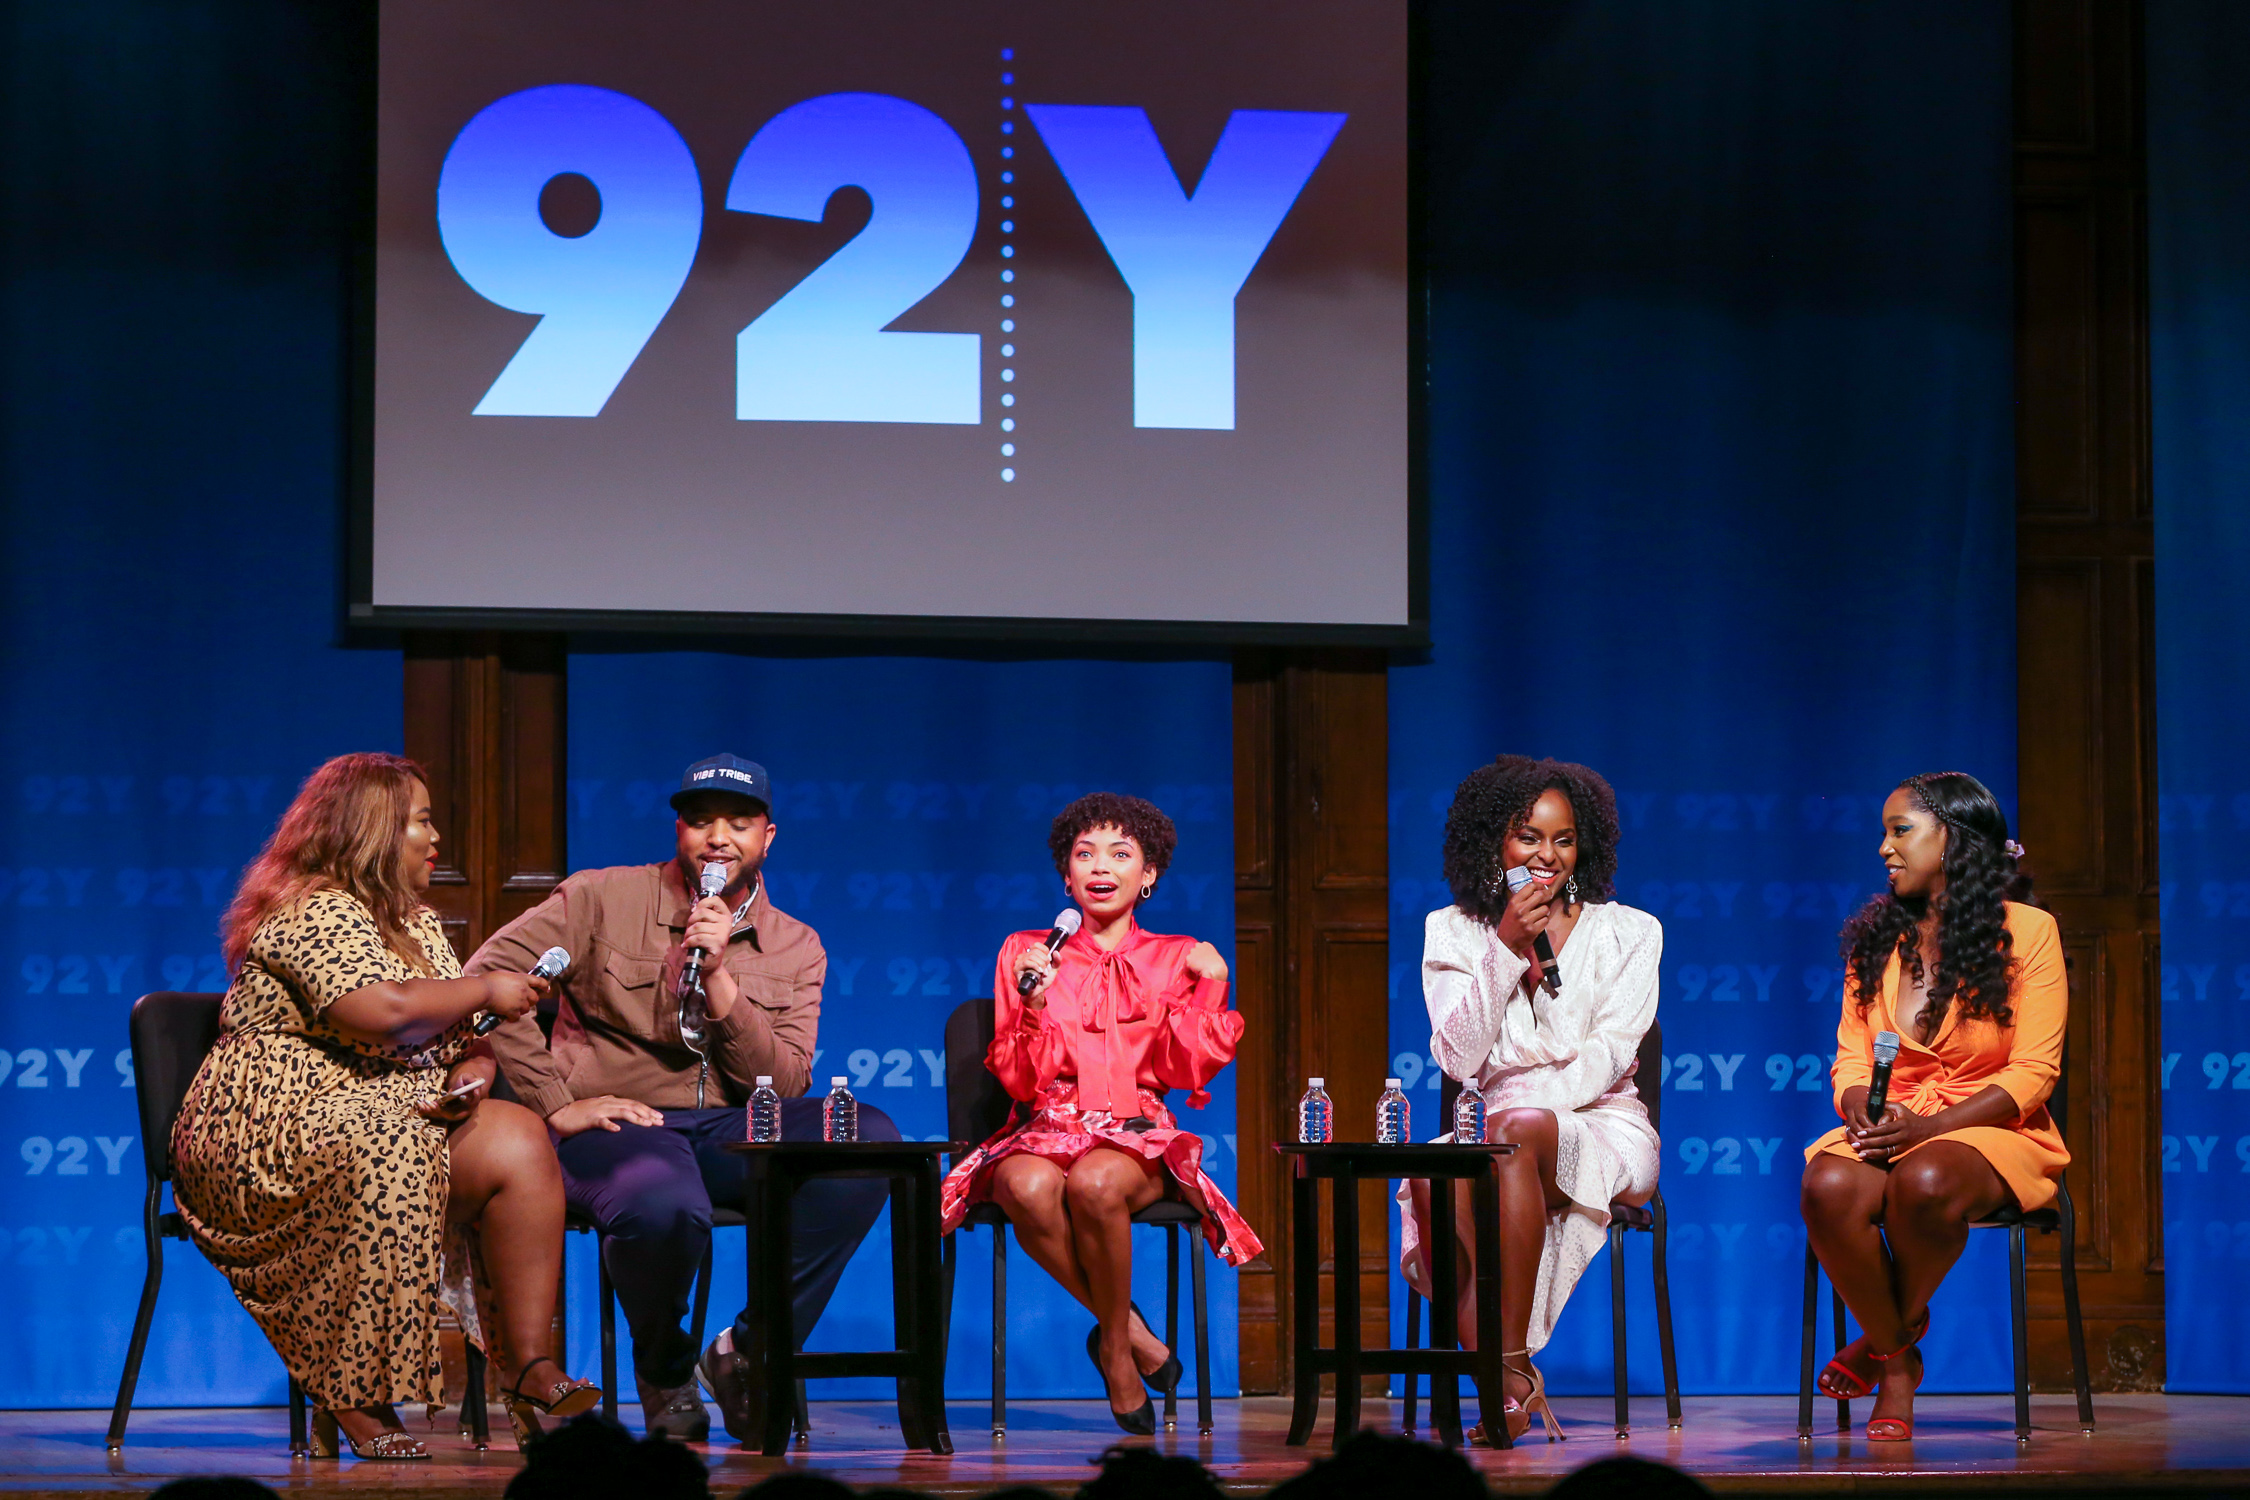 DWP Panel (l to r: Sylvia Obell, Justin Simien, Logan Browning, Antoinette Robertson, and Ashley Blaine Featherson) Photo Credit: Rod Morata/Michael Priest Photography